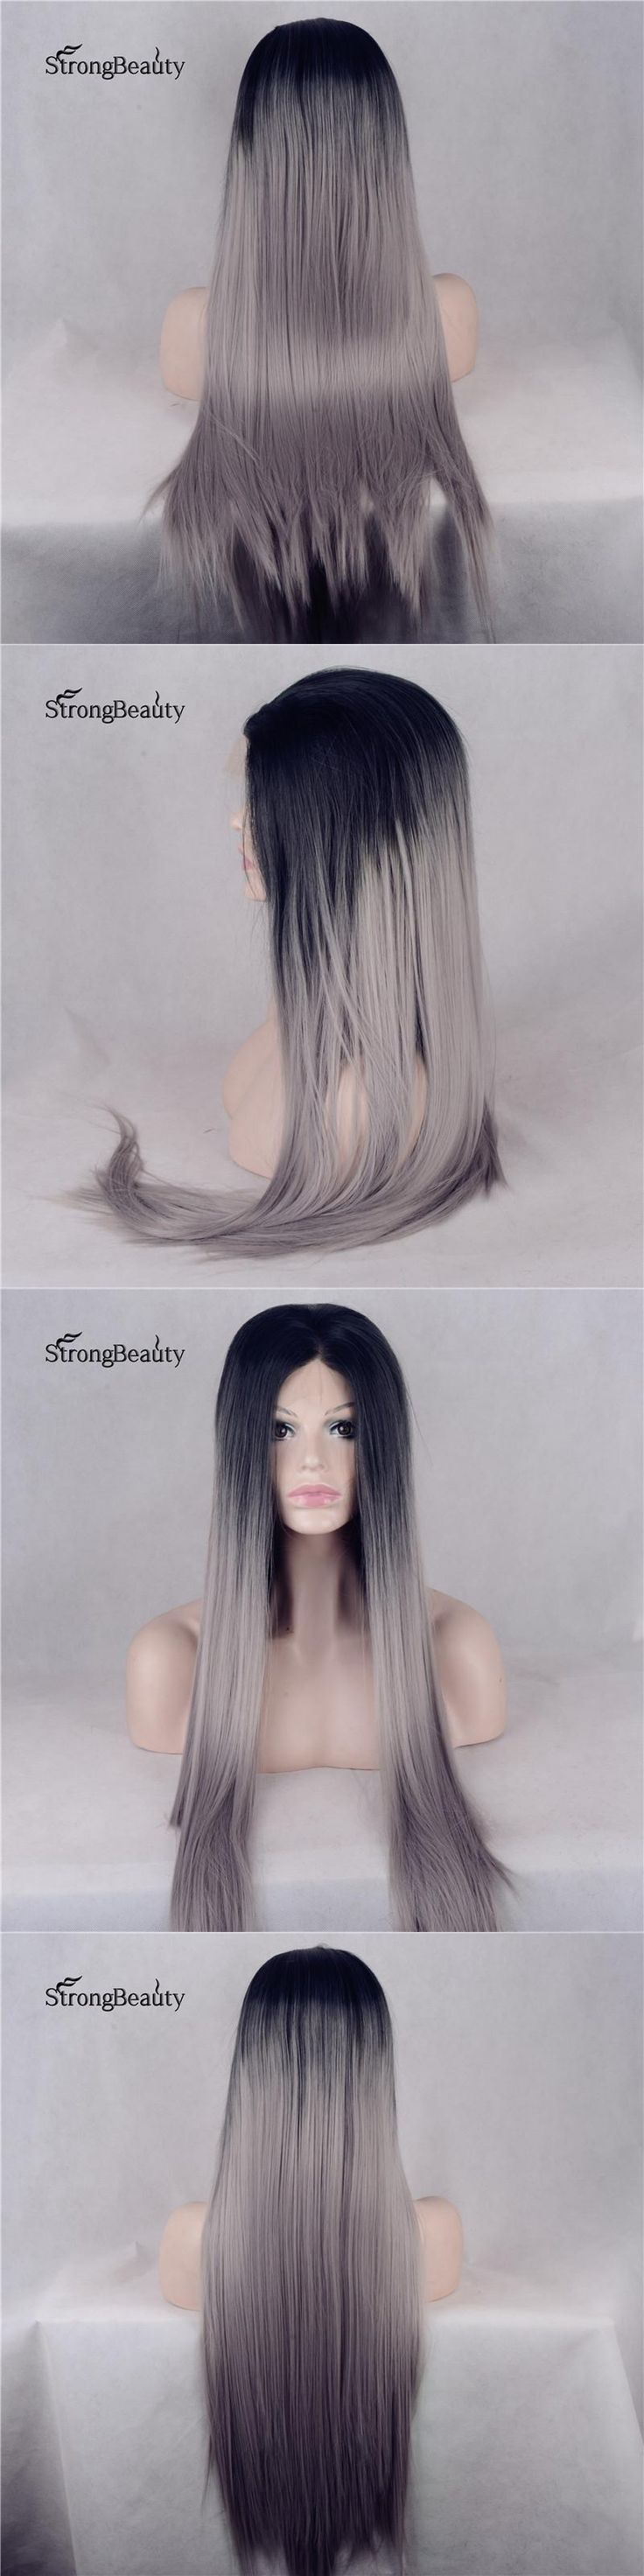 Strongbeauty Long Silk Straight Silver Wig Synthetic Ombre Black to Grey Lace Front Heat Resistant Wig for Black Women